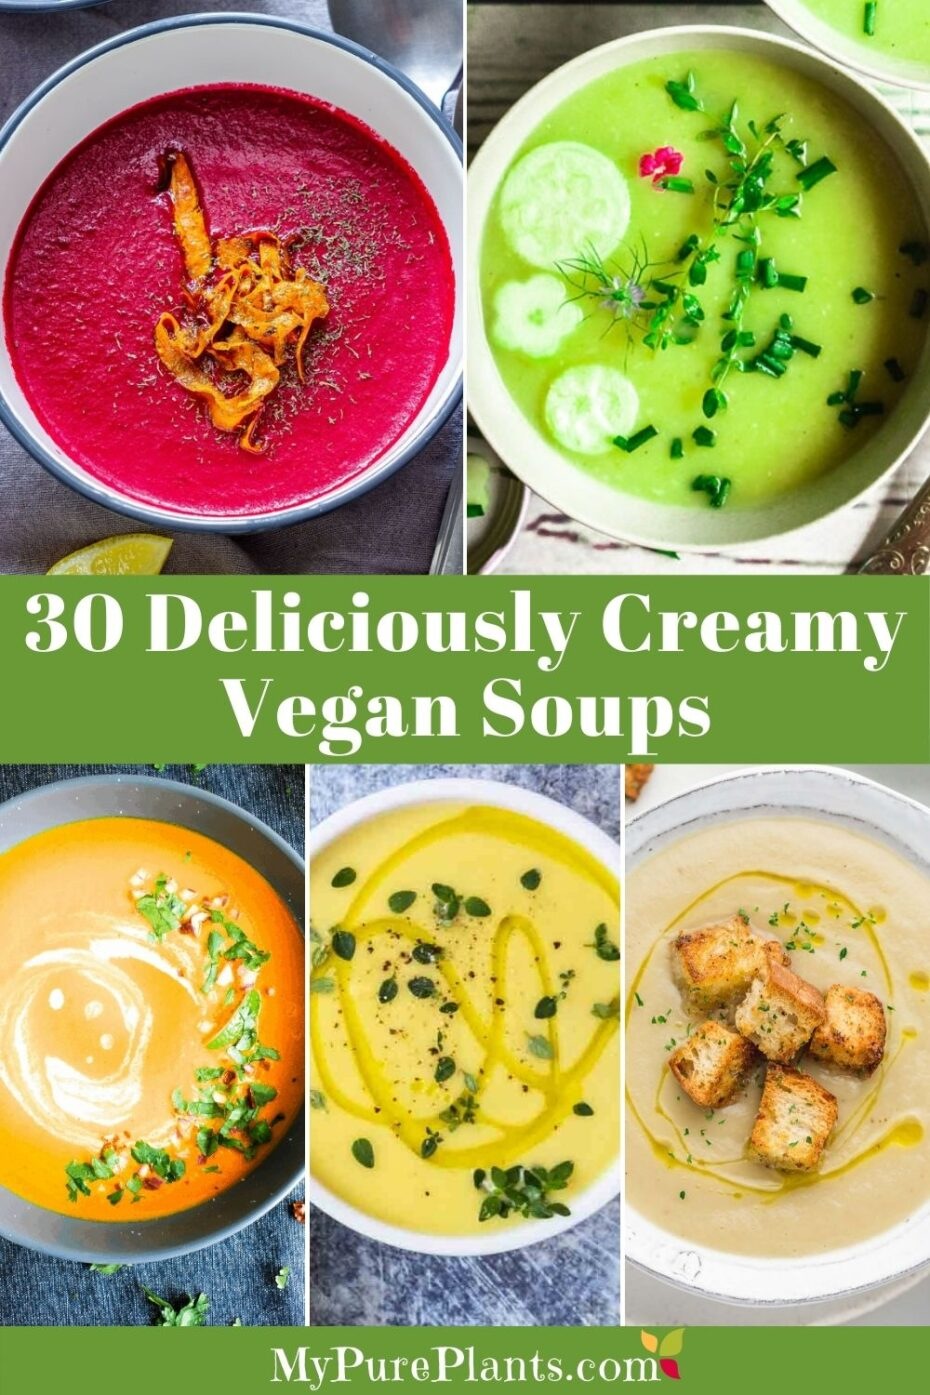 5 photo collage of colorful soups with an overlay text saying 30 deliciously creamy vegan soups